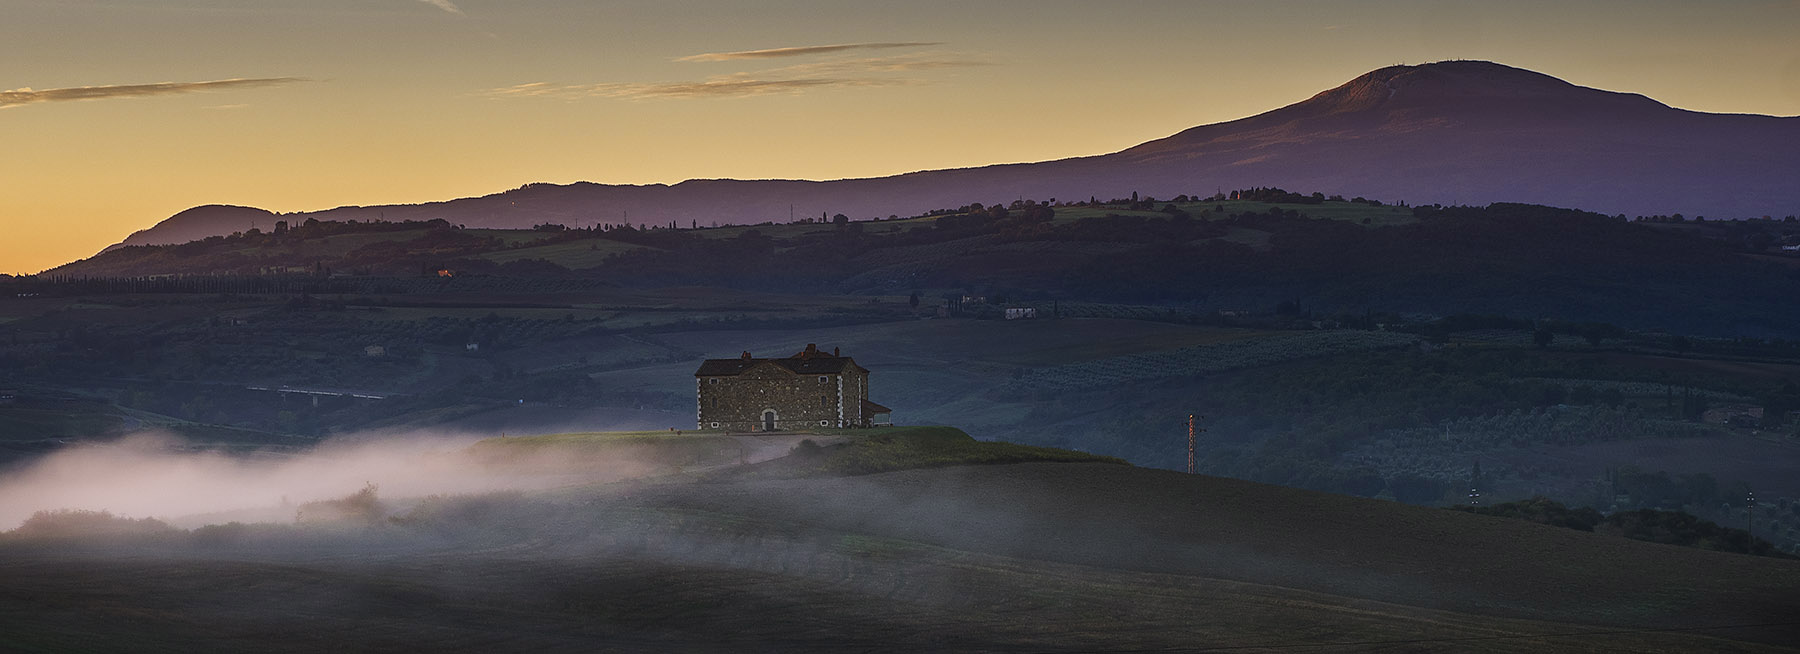 Misty Dawn - Tuscany